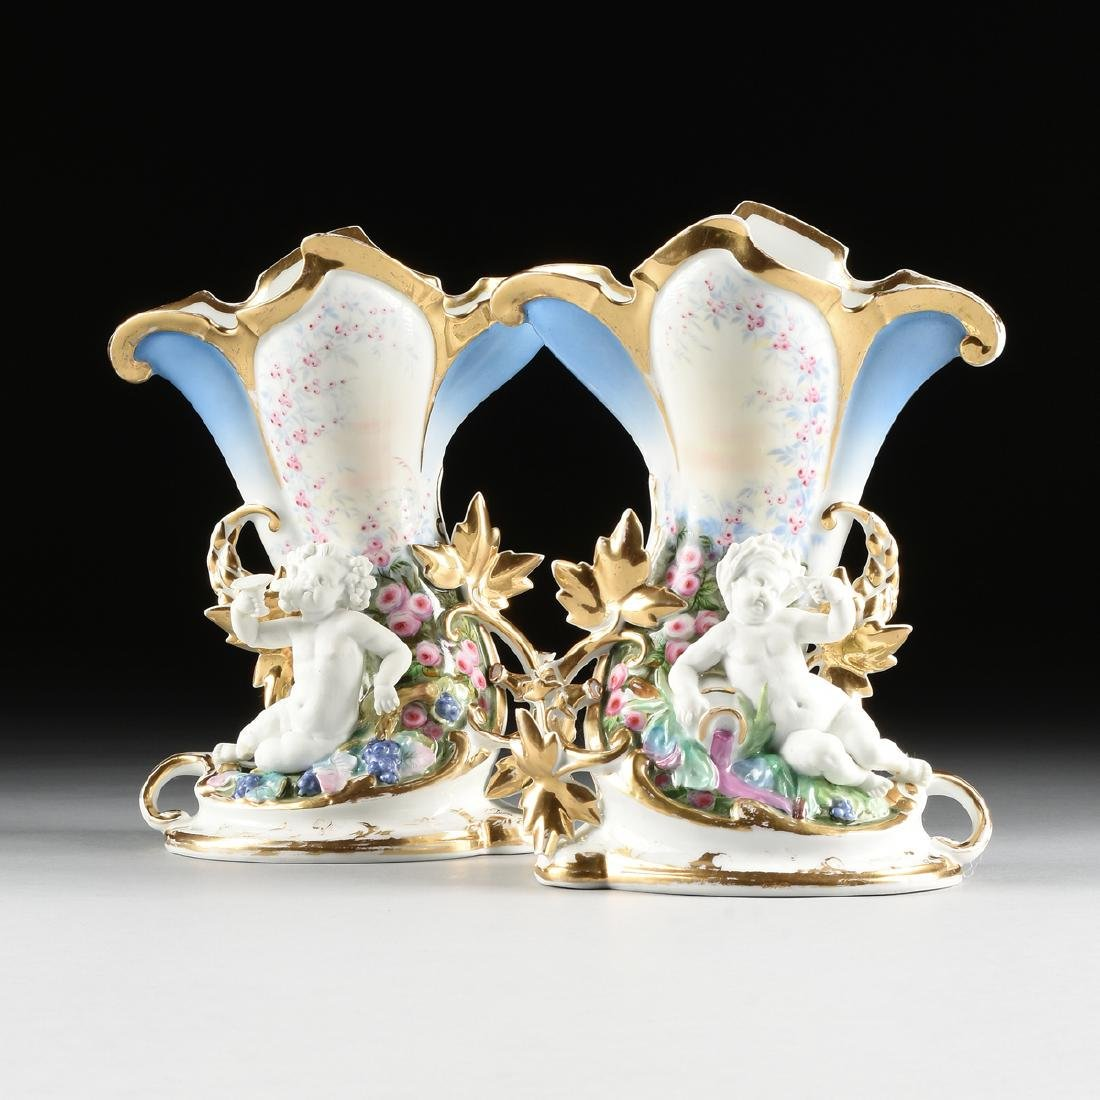 A PAIR OF OLD PARIS POLYCHROME ENAMEL DECORATED AND